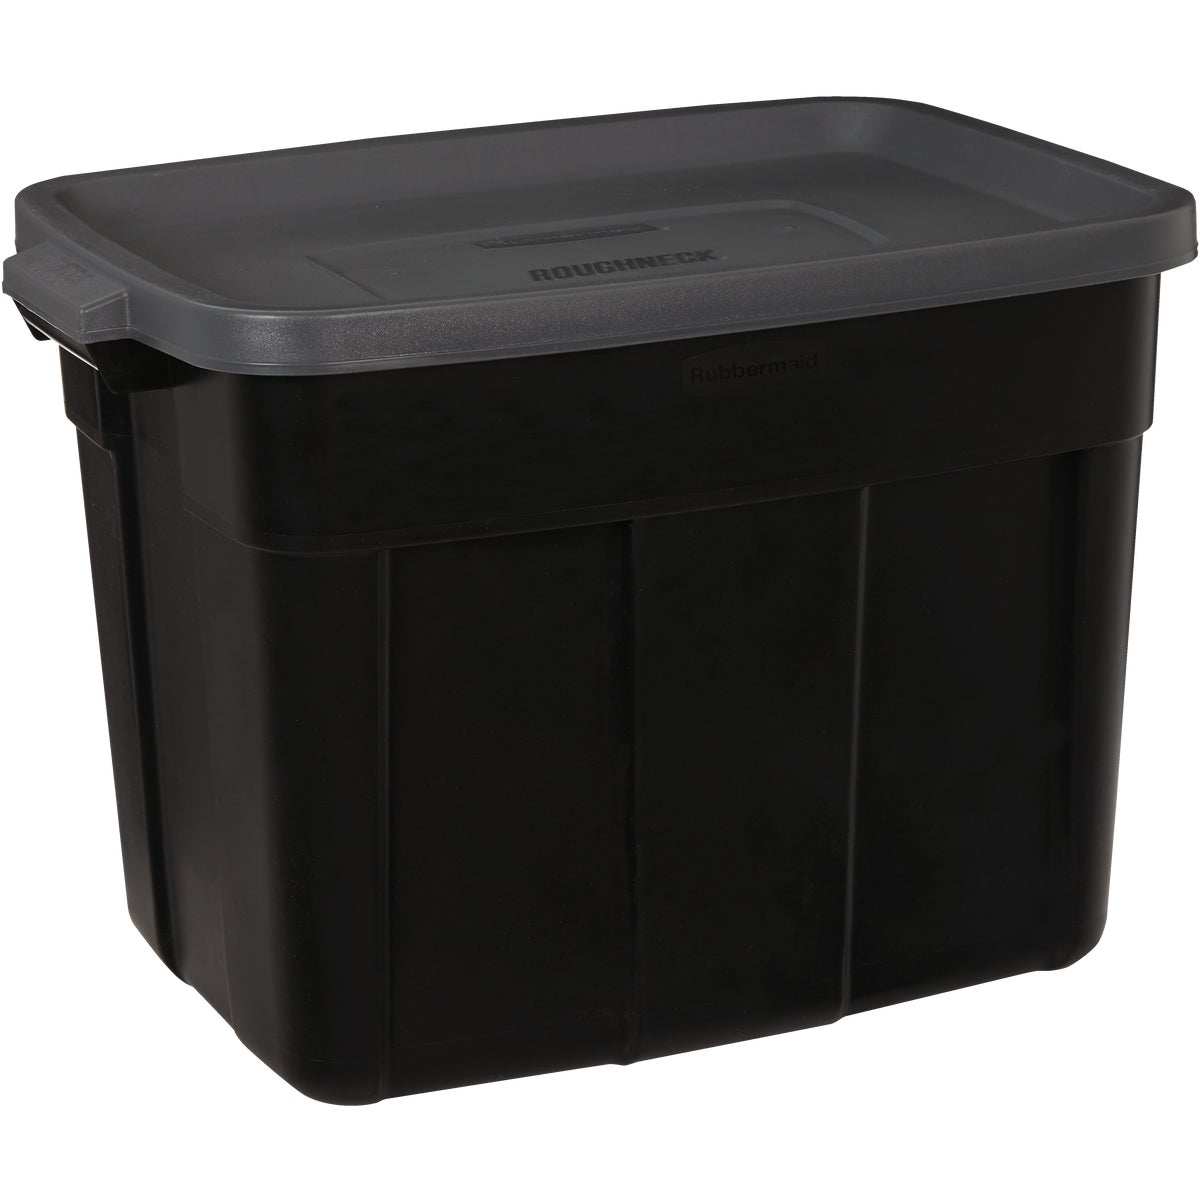 18GAL INDIGO STORAGE BOX - 2215CPDIM by Rubbermaid Home